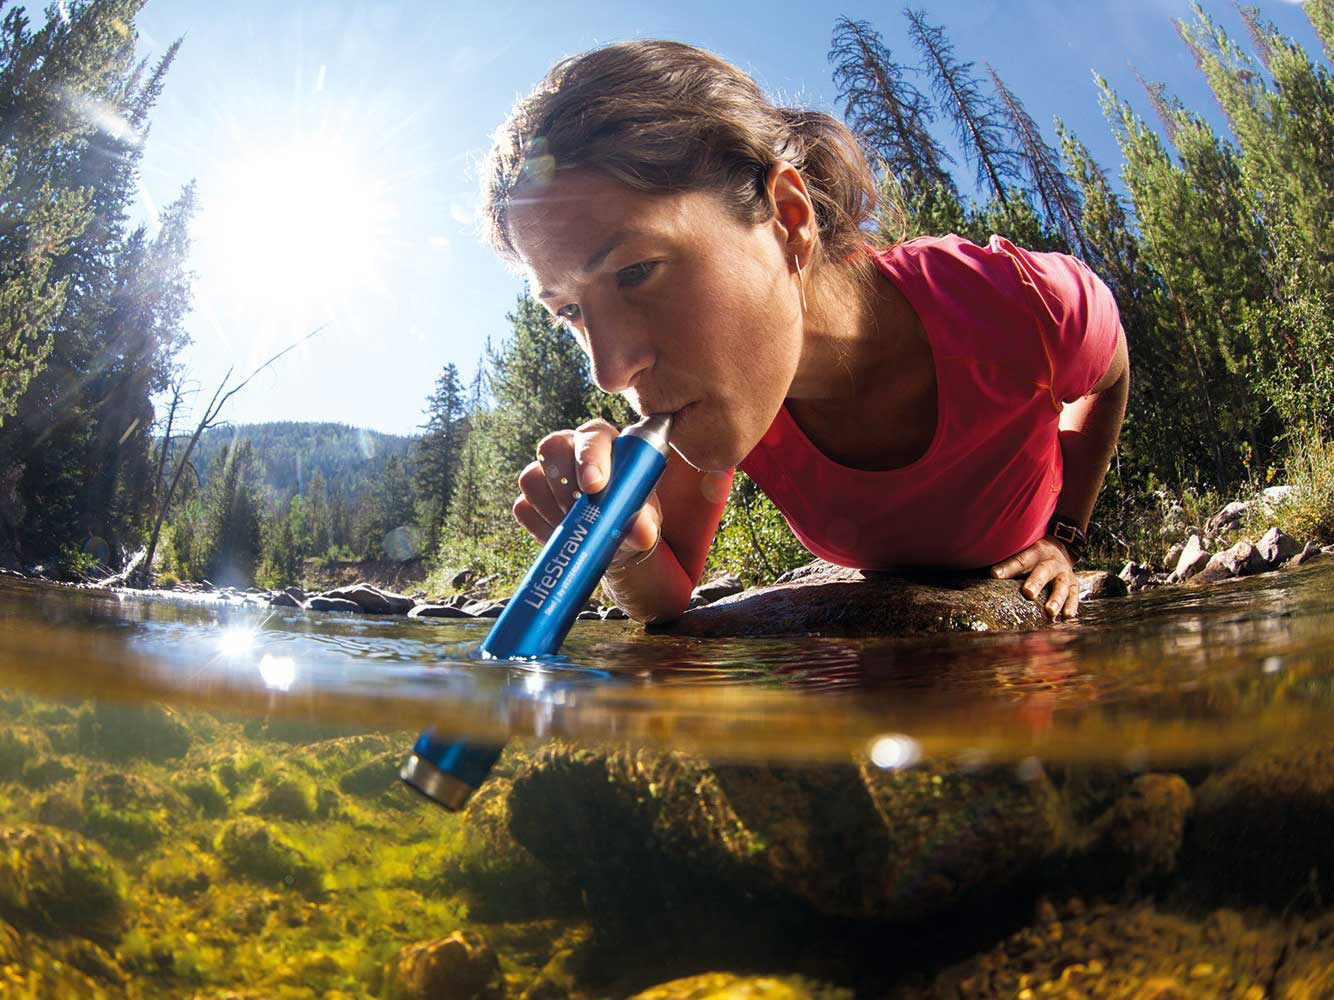 woman using lifestraw to drink water from river